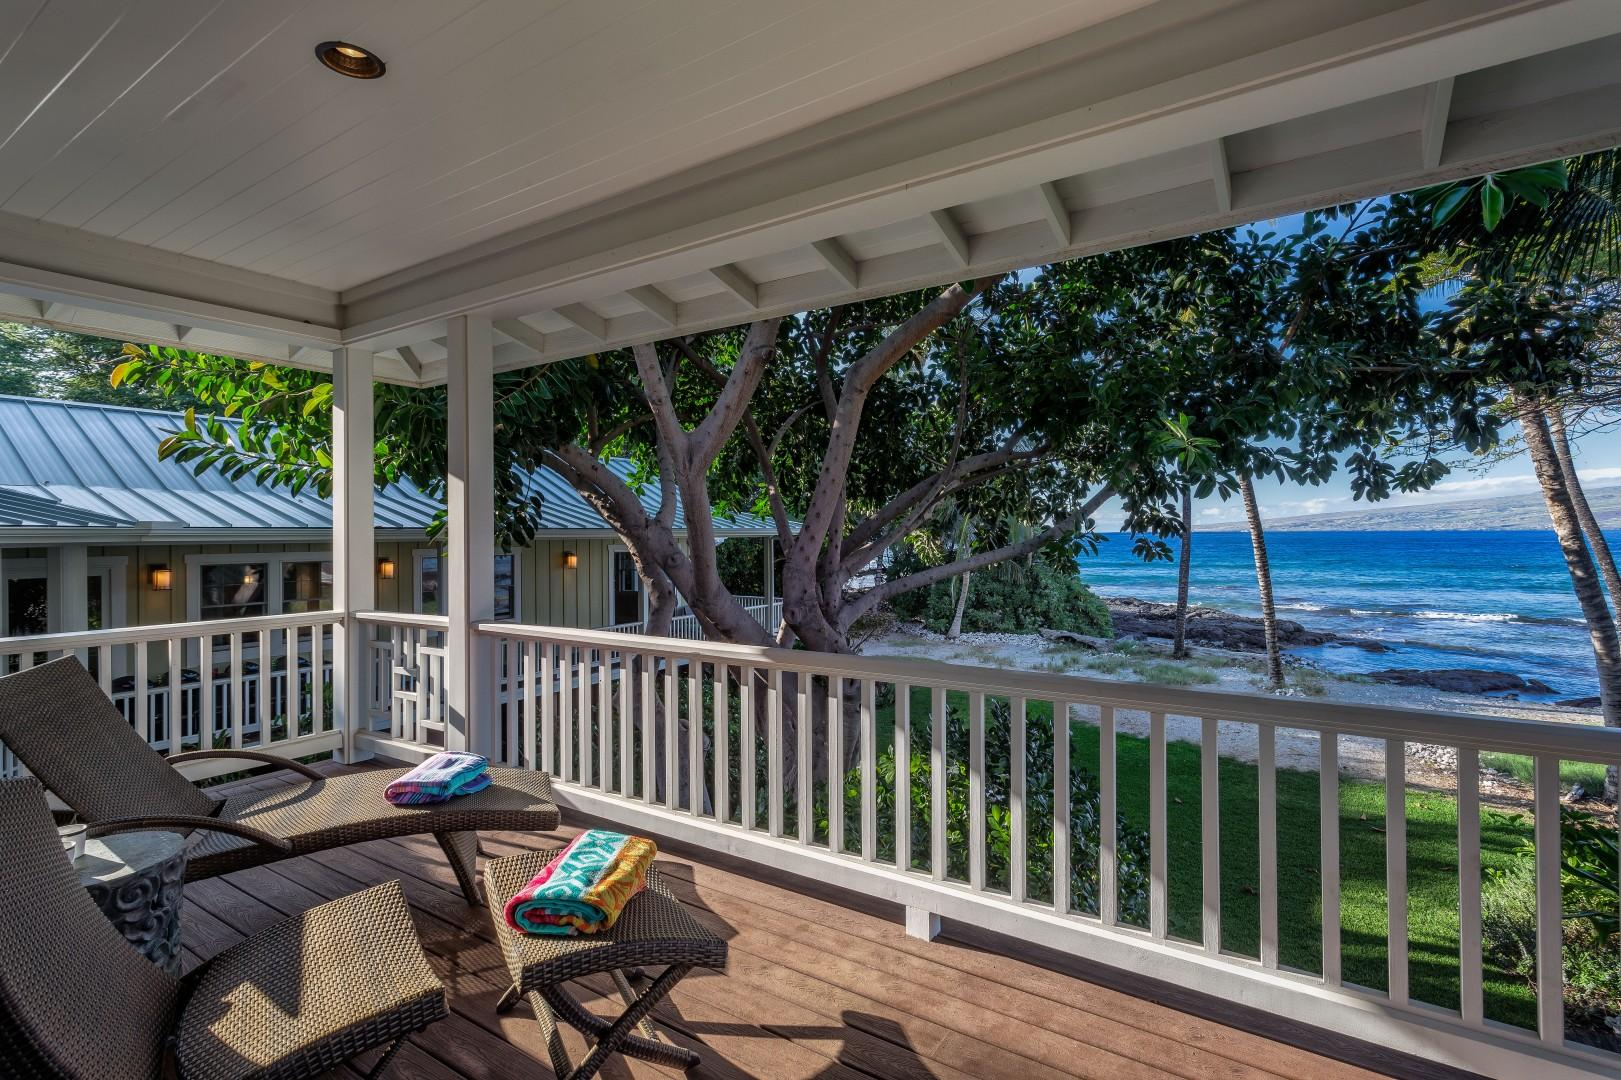 Alternate View of Ohana Guest Cottage Lanai Under the Eves of the Majestic Banyan Tree.